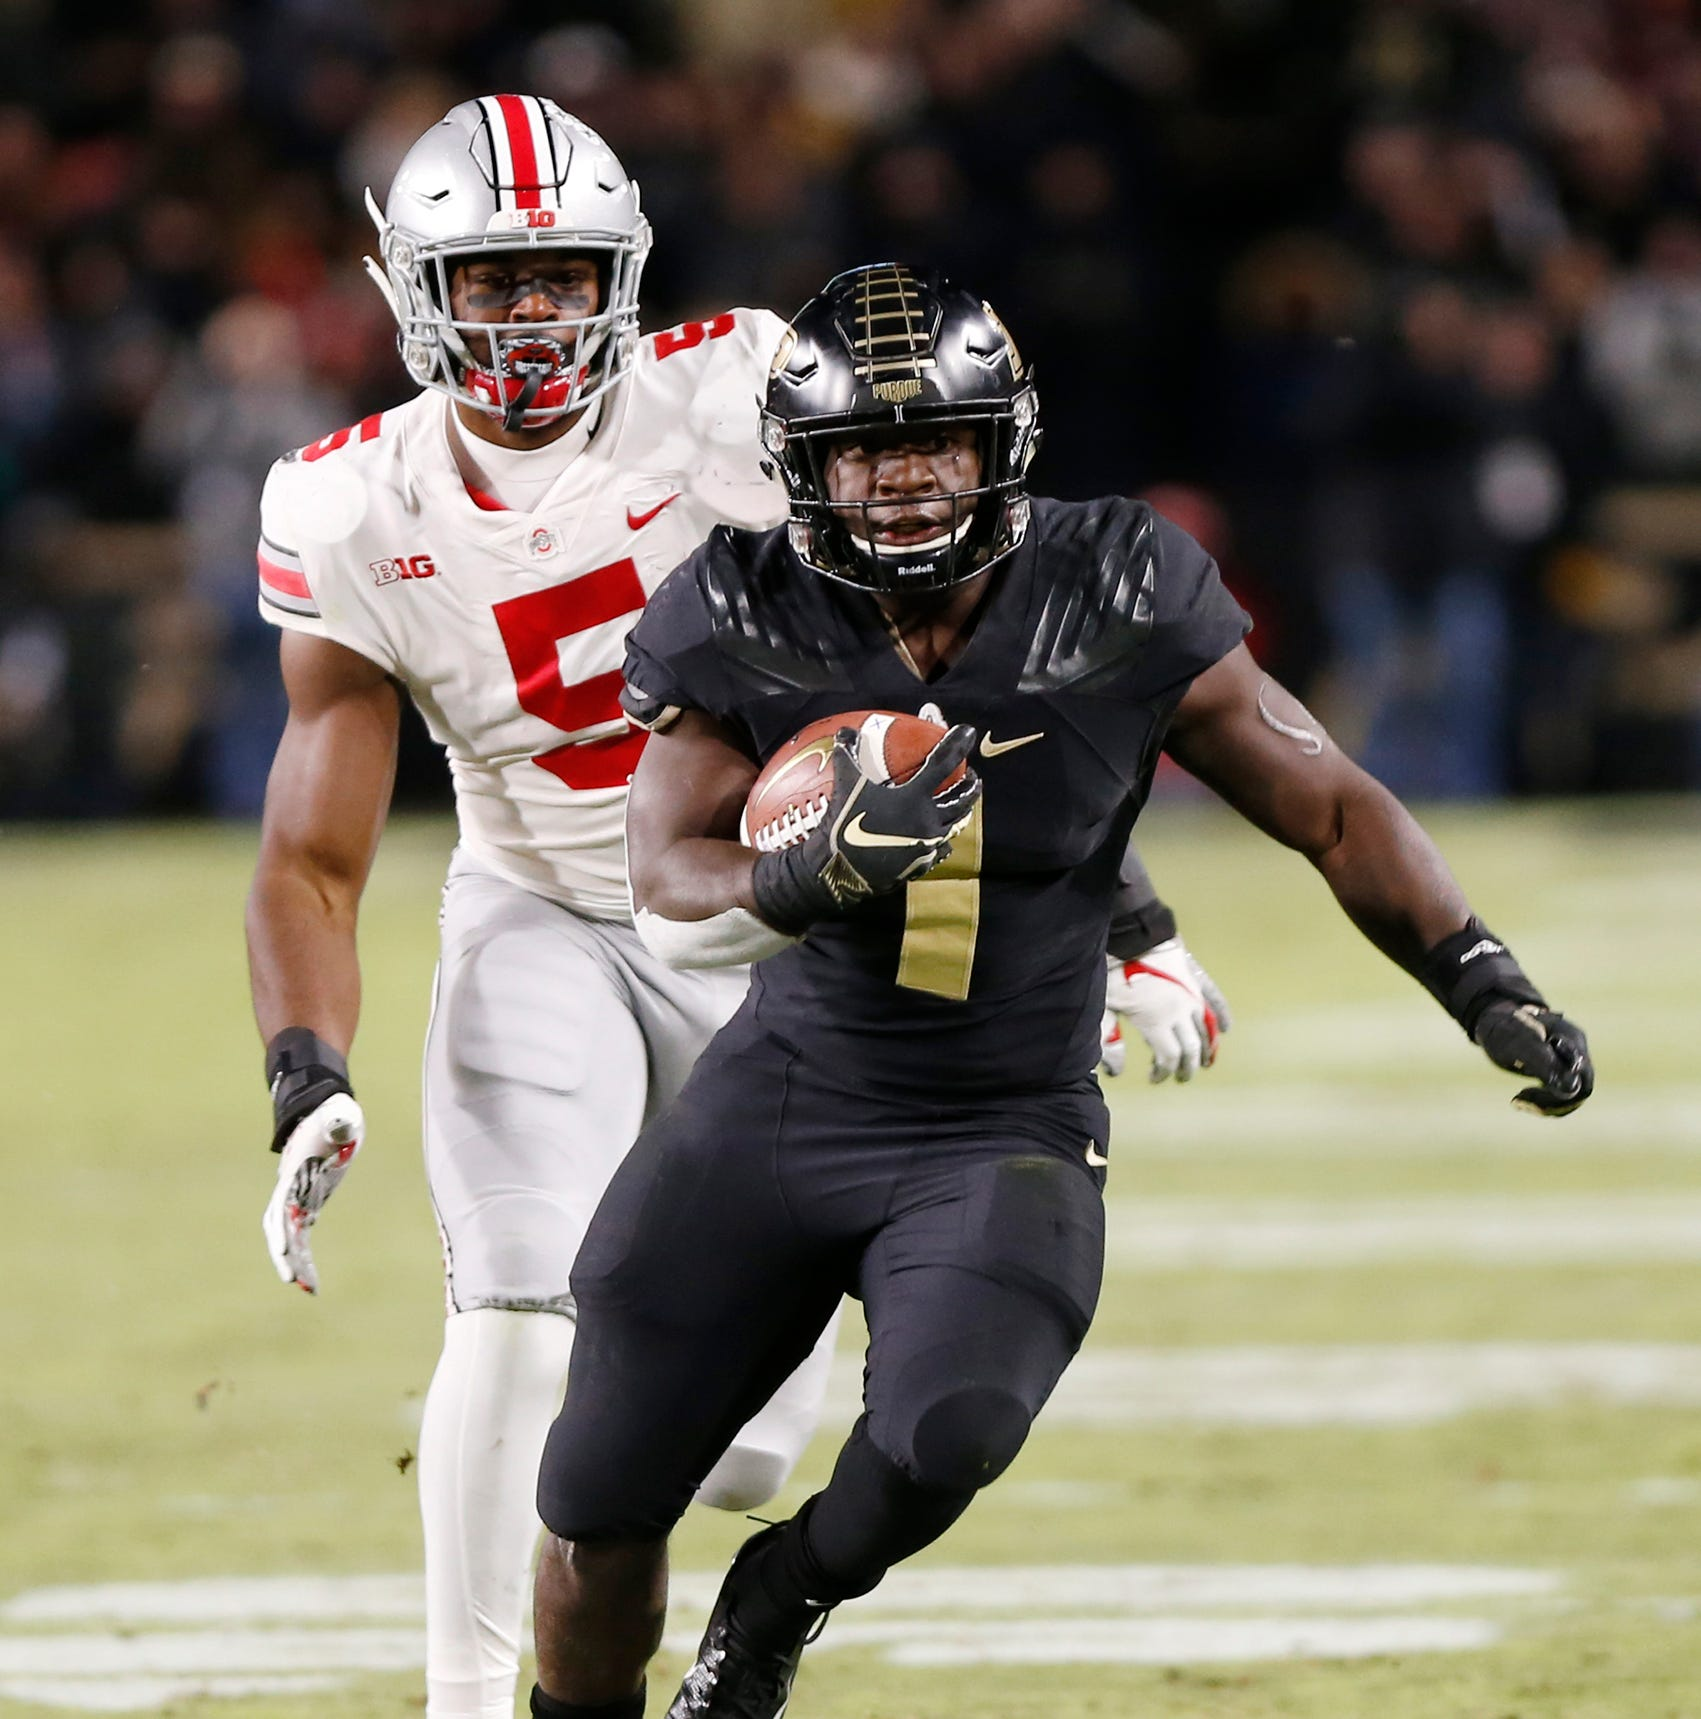 Purdue 28, Ohio State 13, 4th | Live updates